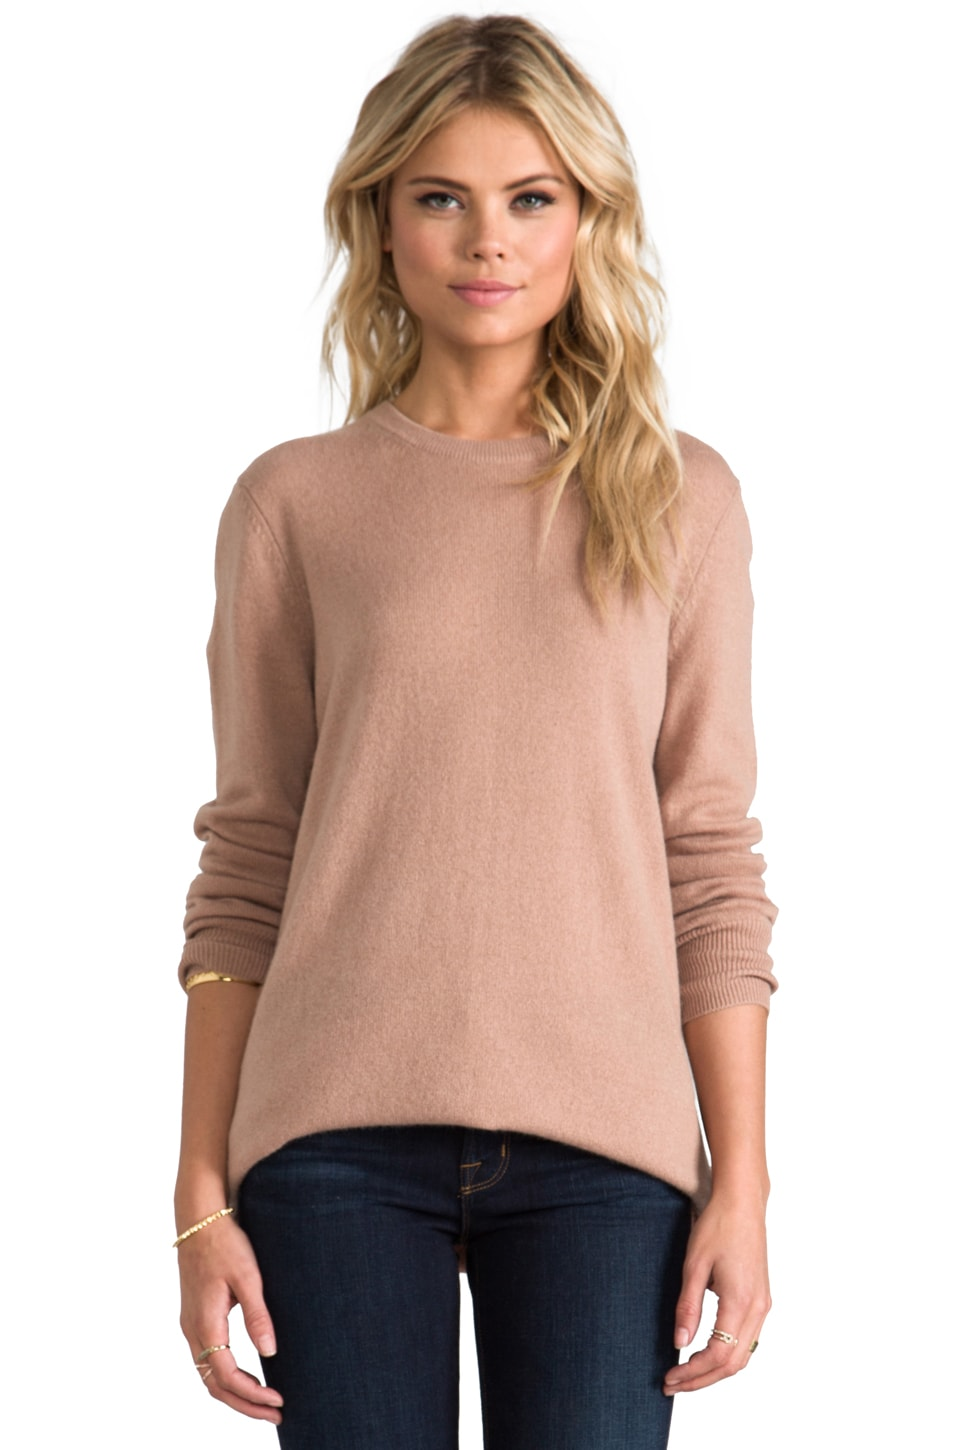 Equipment Rei Crew Sweater in Camel